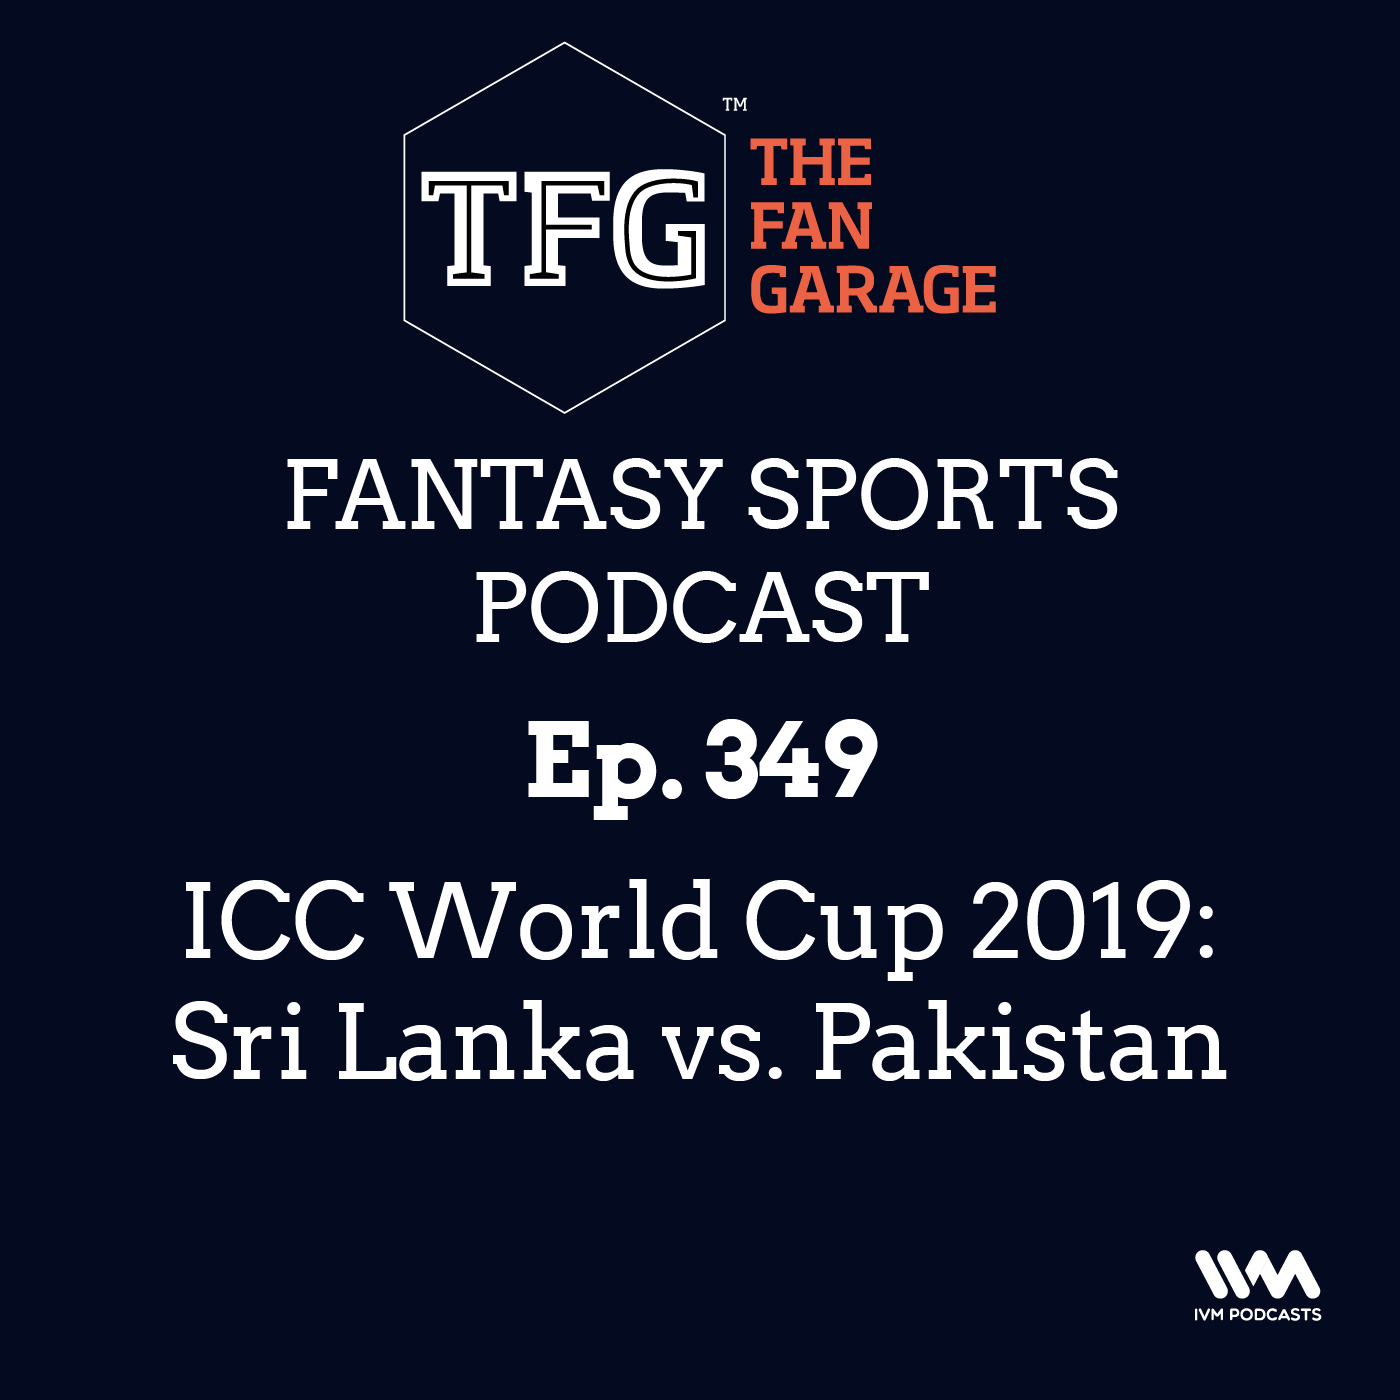 TFG Fantasy Sports Podcast Ep. 349: ICC World Cup 2019: Sri Lanka vs. Pakistan